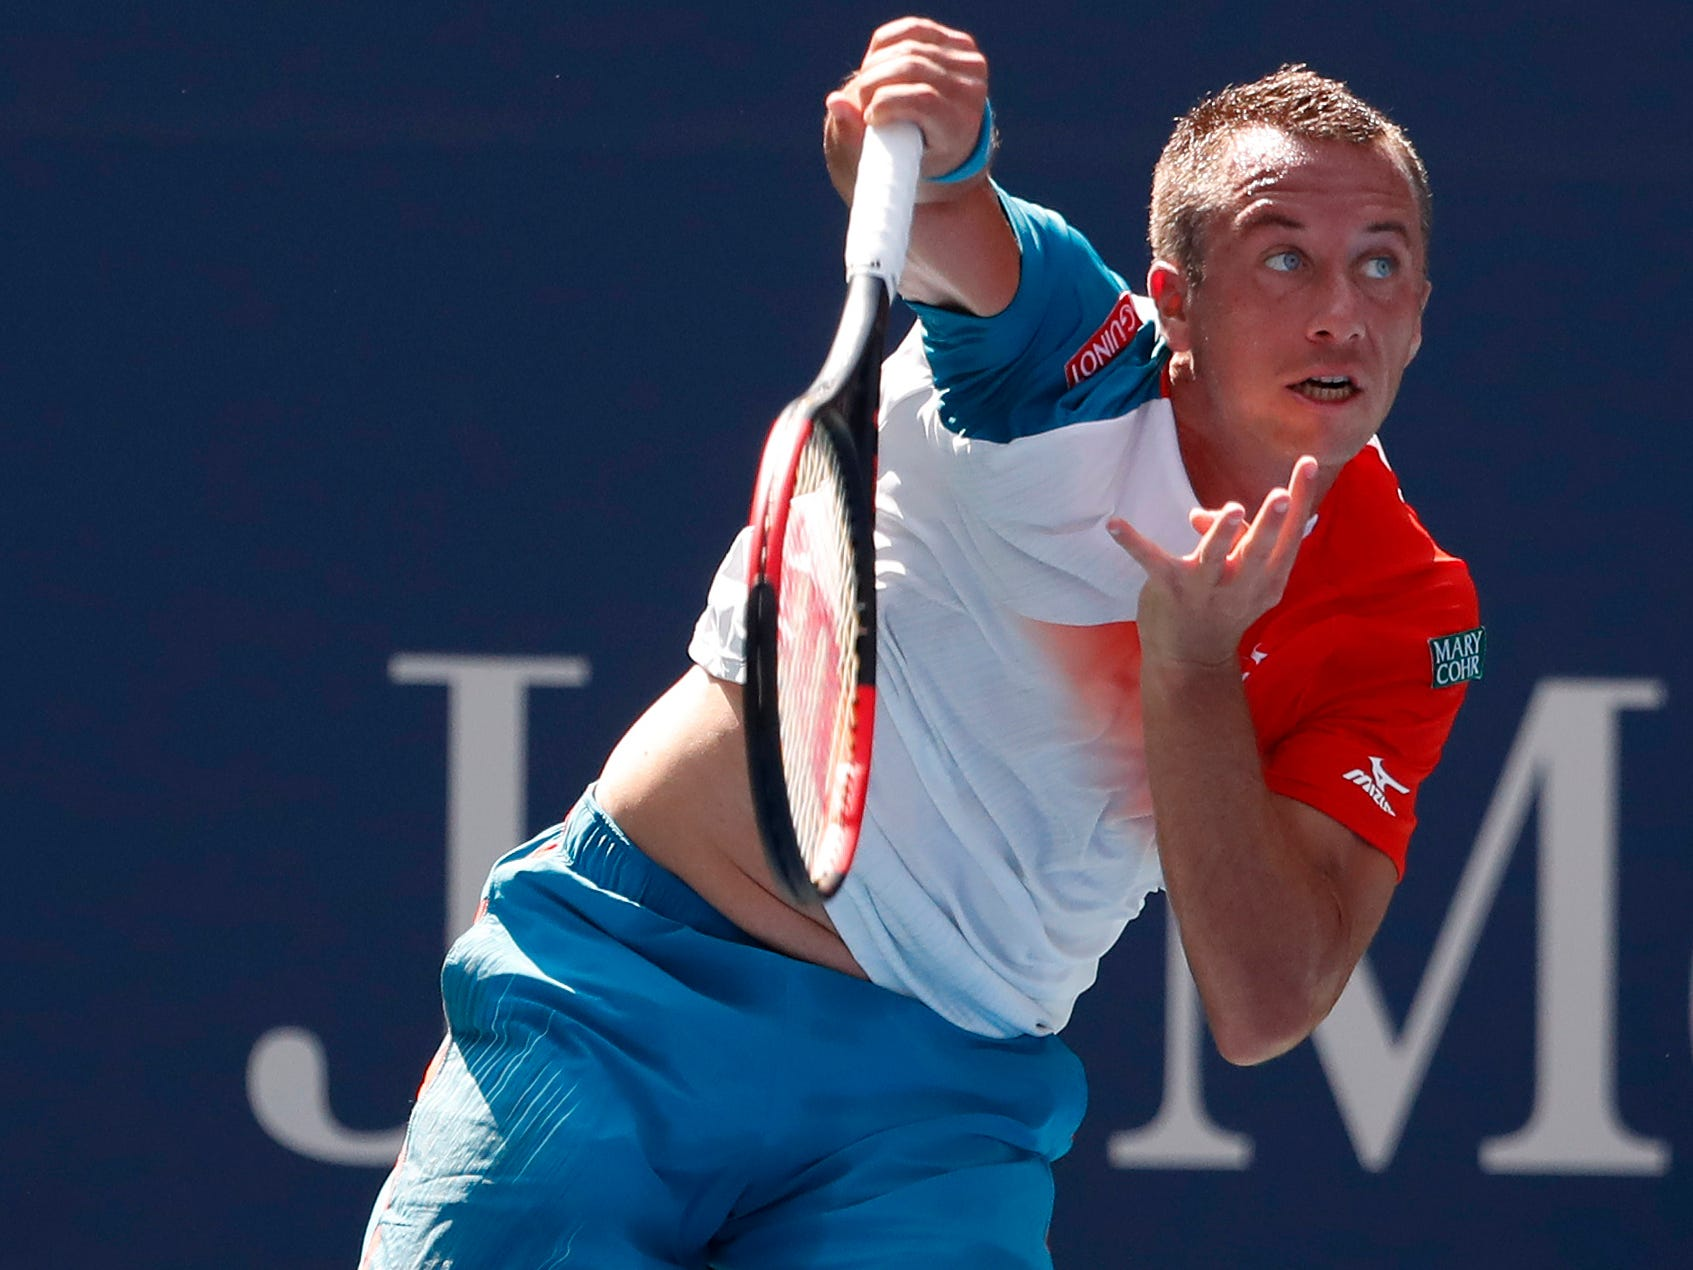 Philipp Kohlschreiber of Germany serves against Kei Nishikori of Japan.